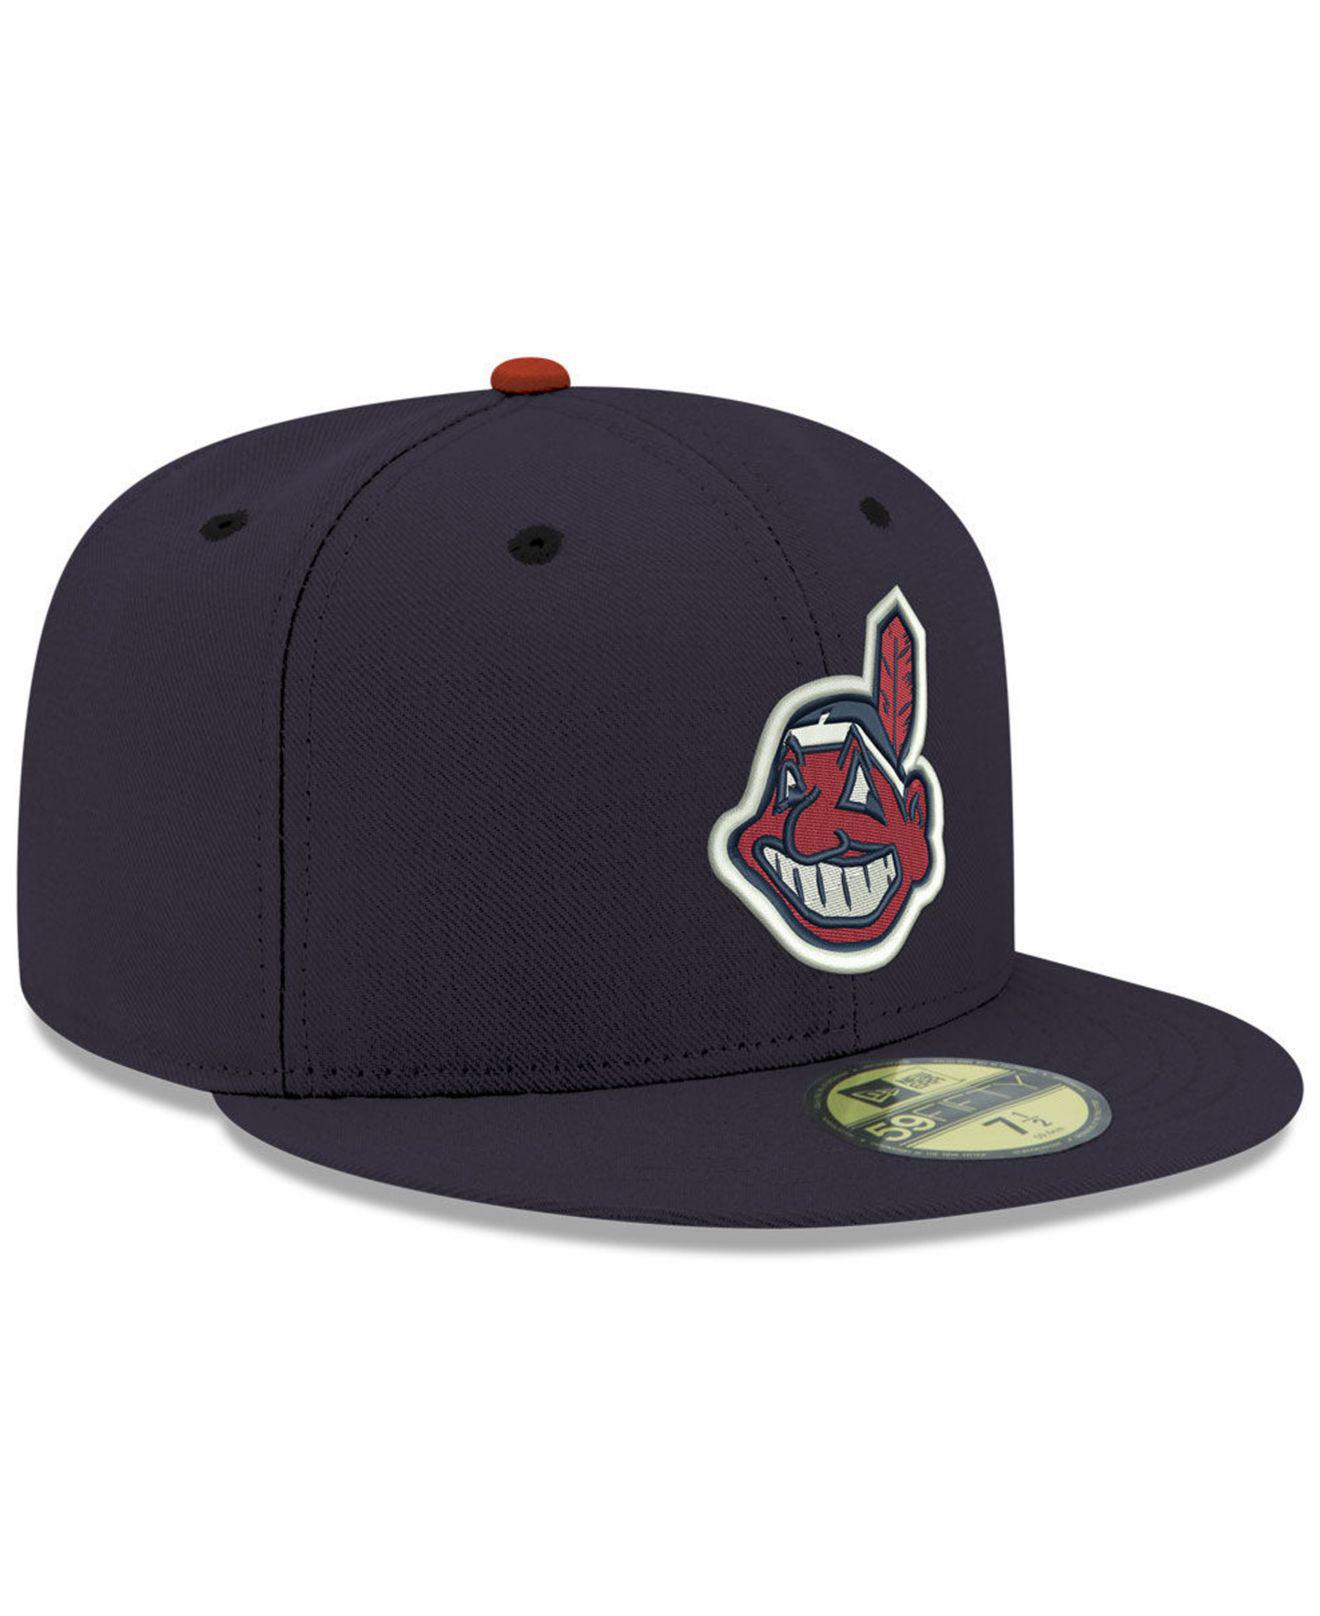 da9c49c028e07 KTZ Cleveland Indians Retro Classic 59fifty Fitted Cap in Blue for Men -  Lyst